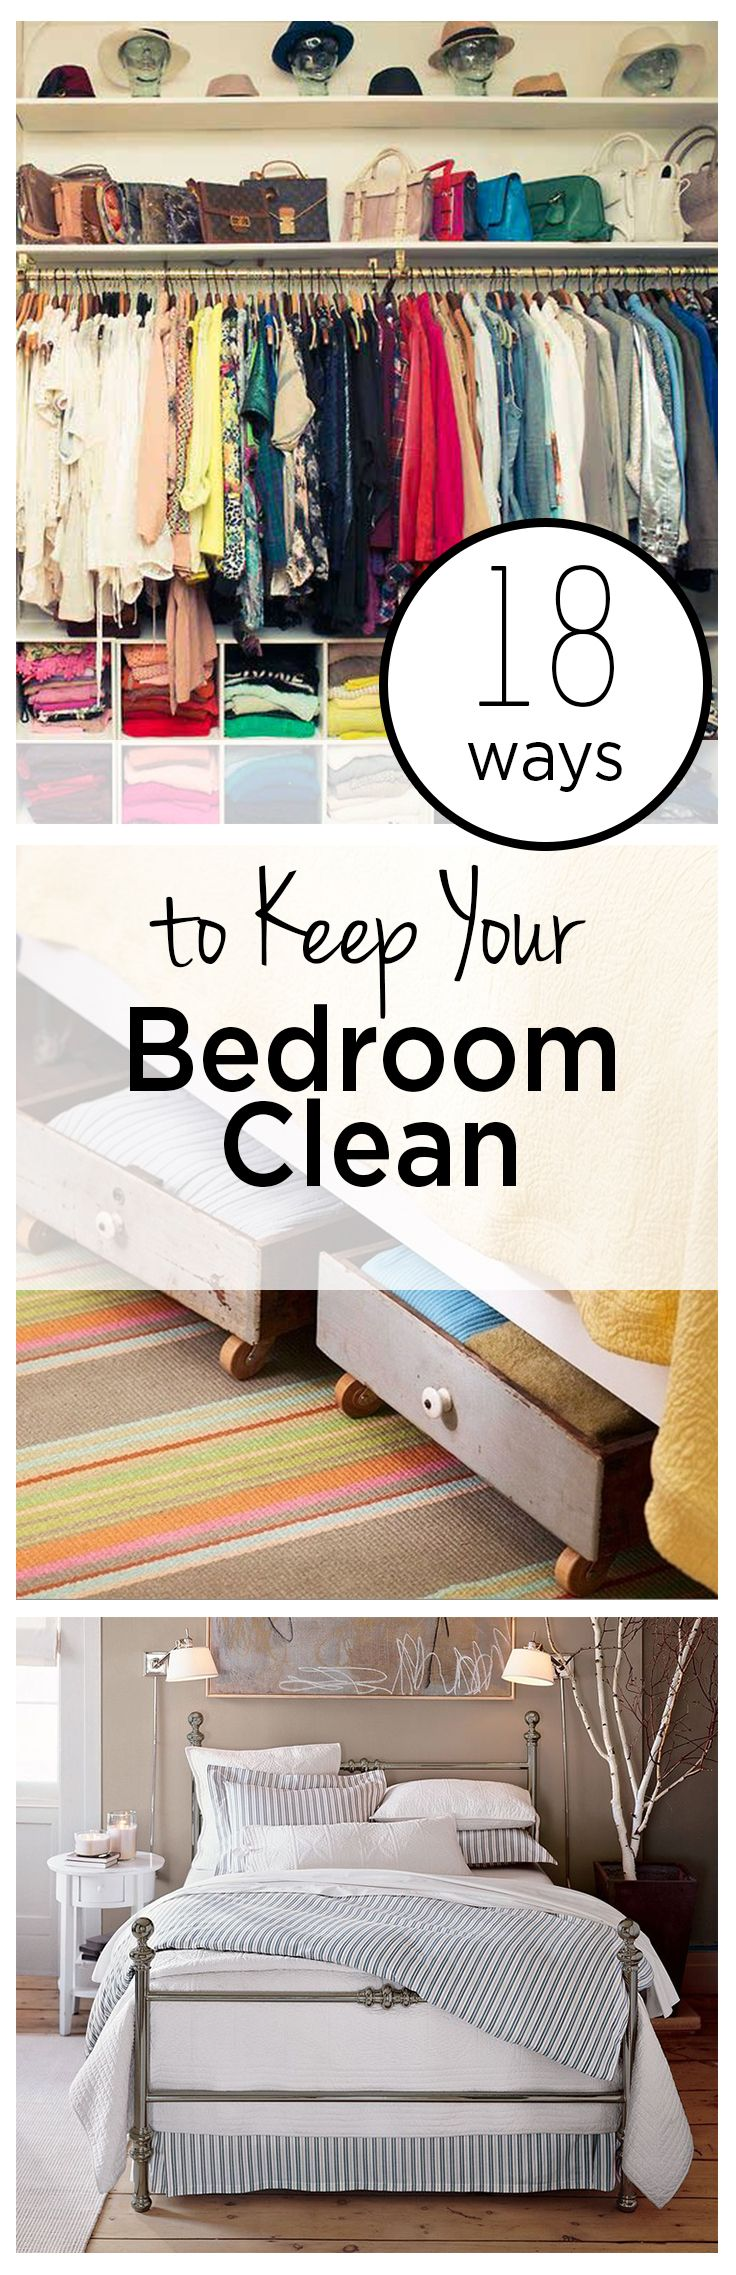 Best 25 Bedroom Cleaning Ideas On Pinterest Declutter Bedroom How To Declutter And How To